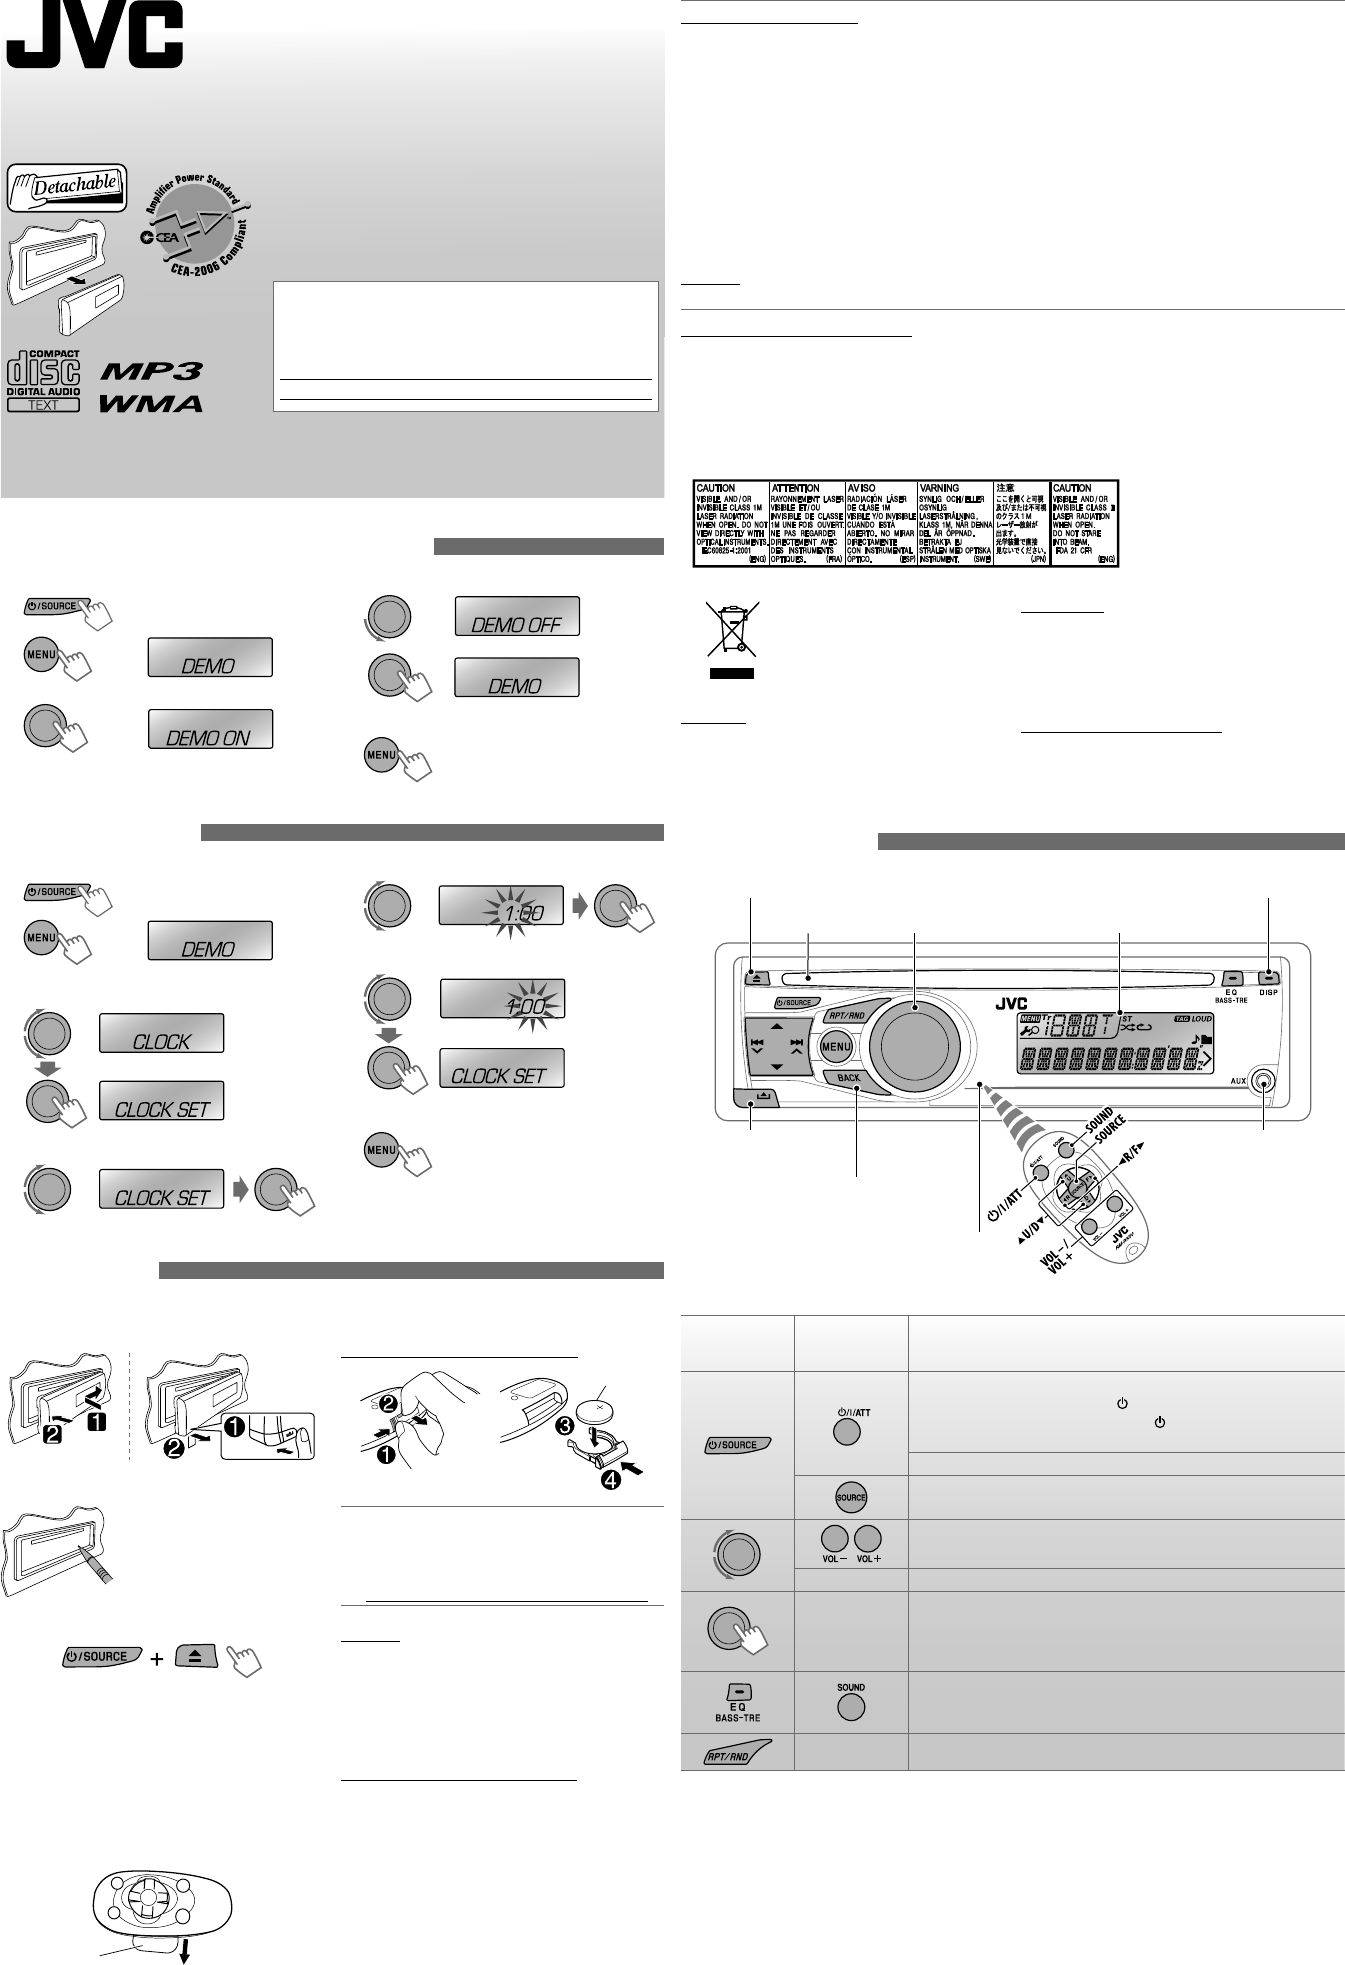 f9fc7dd5 83aa 48a0 9e1b 077279155be3 bg1 jvc cd player kd r218 user guide manualsonline com jvc kd s37 wiring diagram at bakdesigns.co